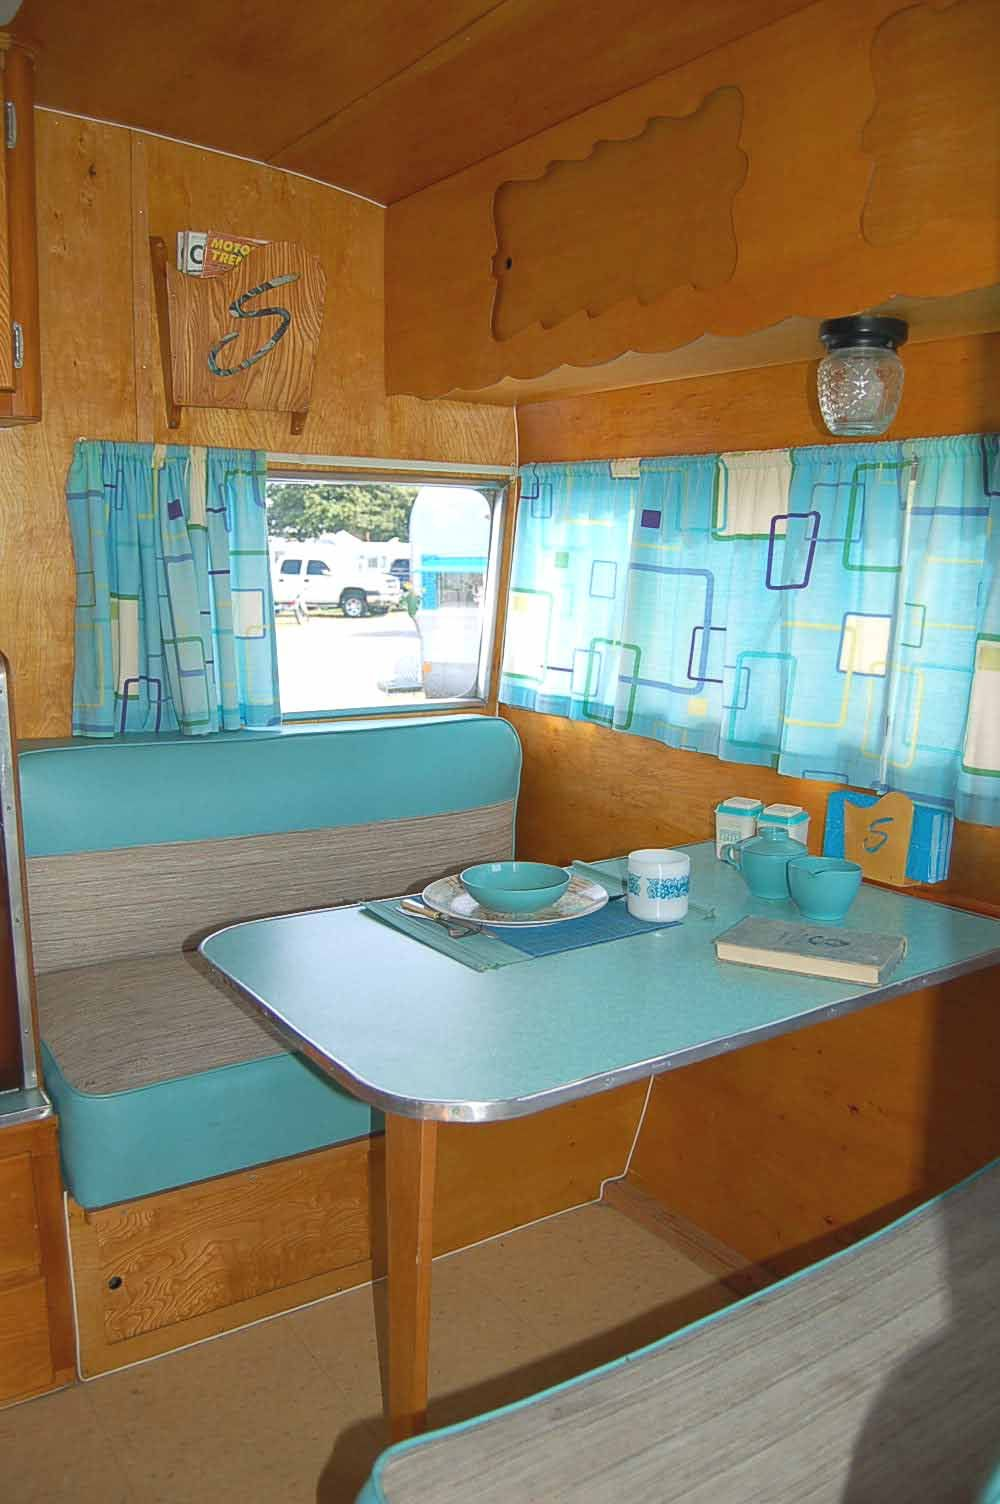 Fun Kitchen Pictures Of Ideas To Decorate Vintage Trailer Fun Kitchen Retro